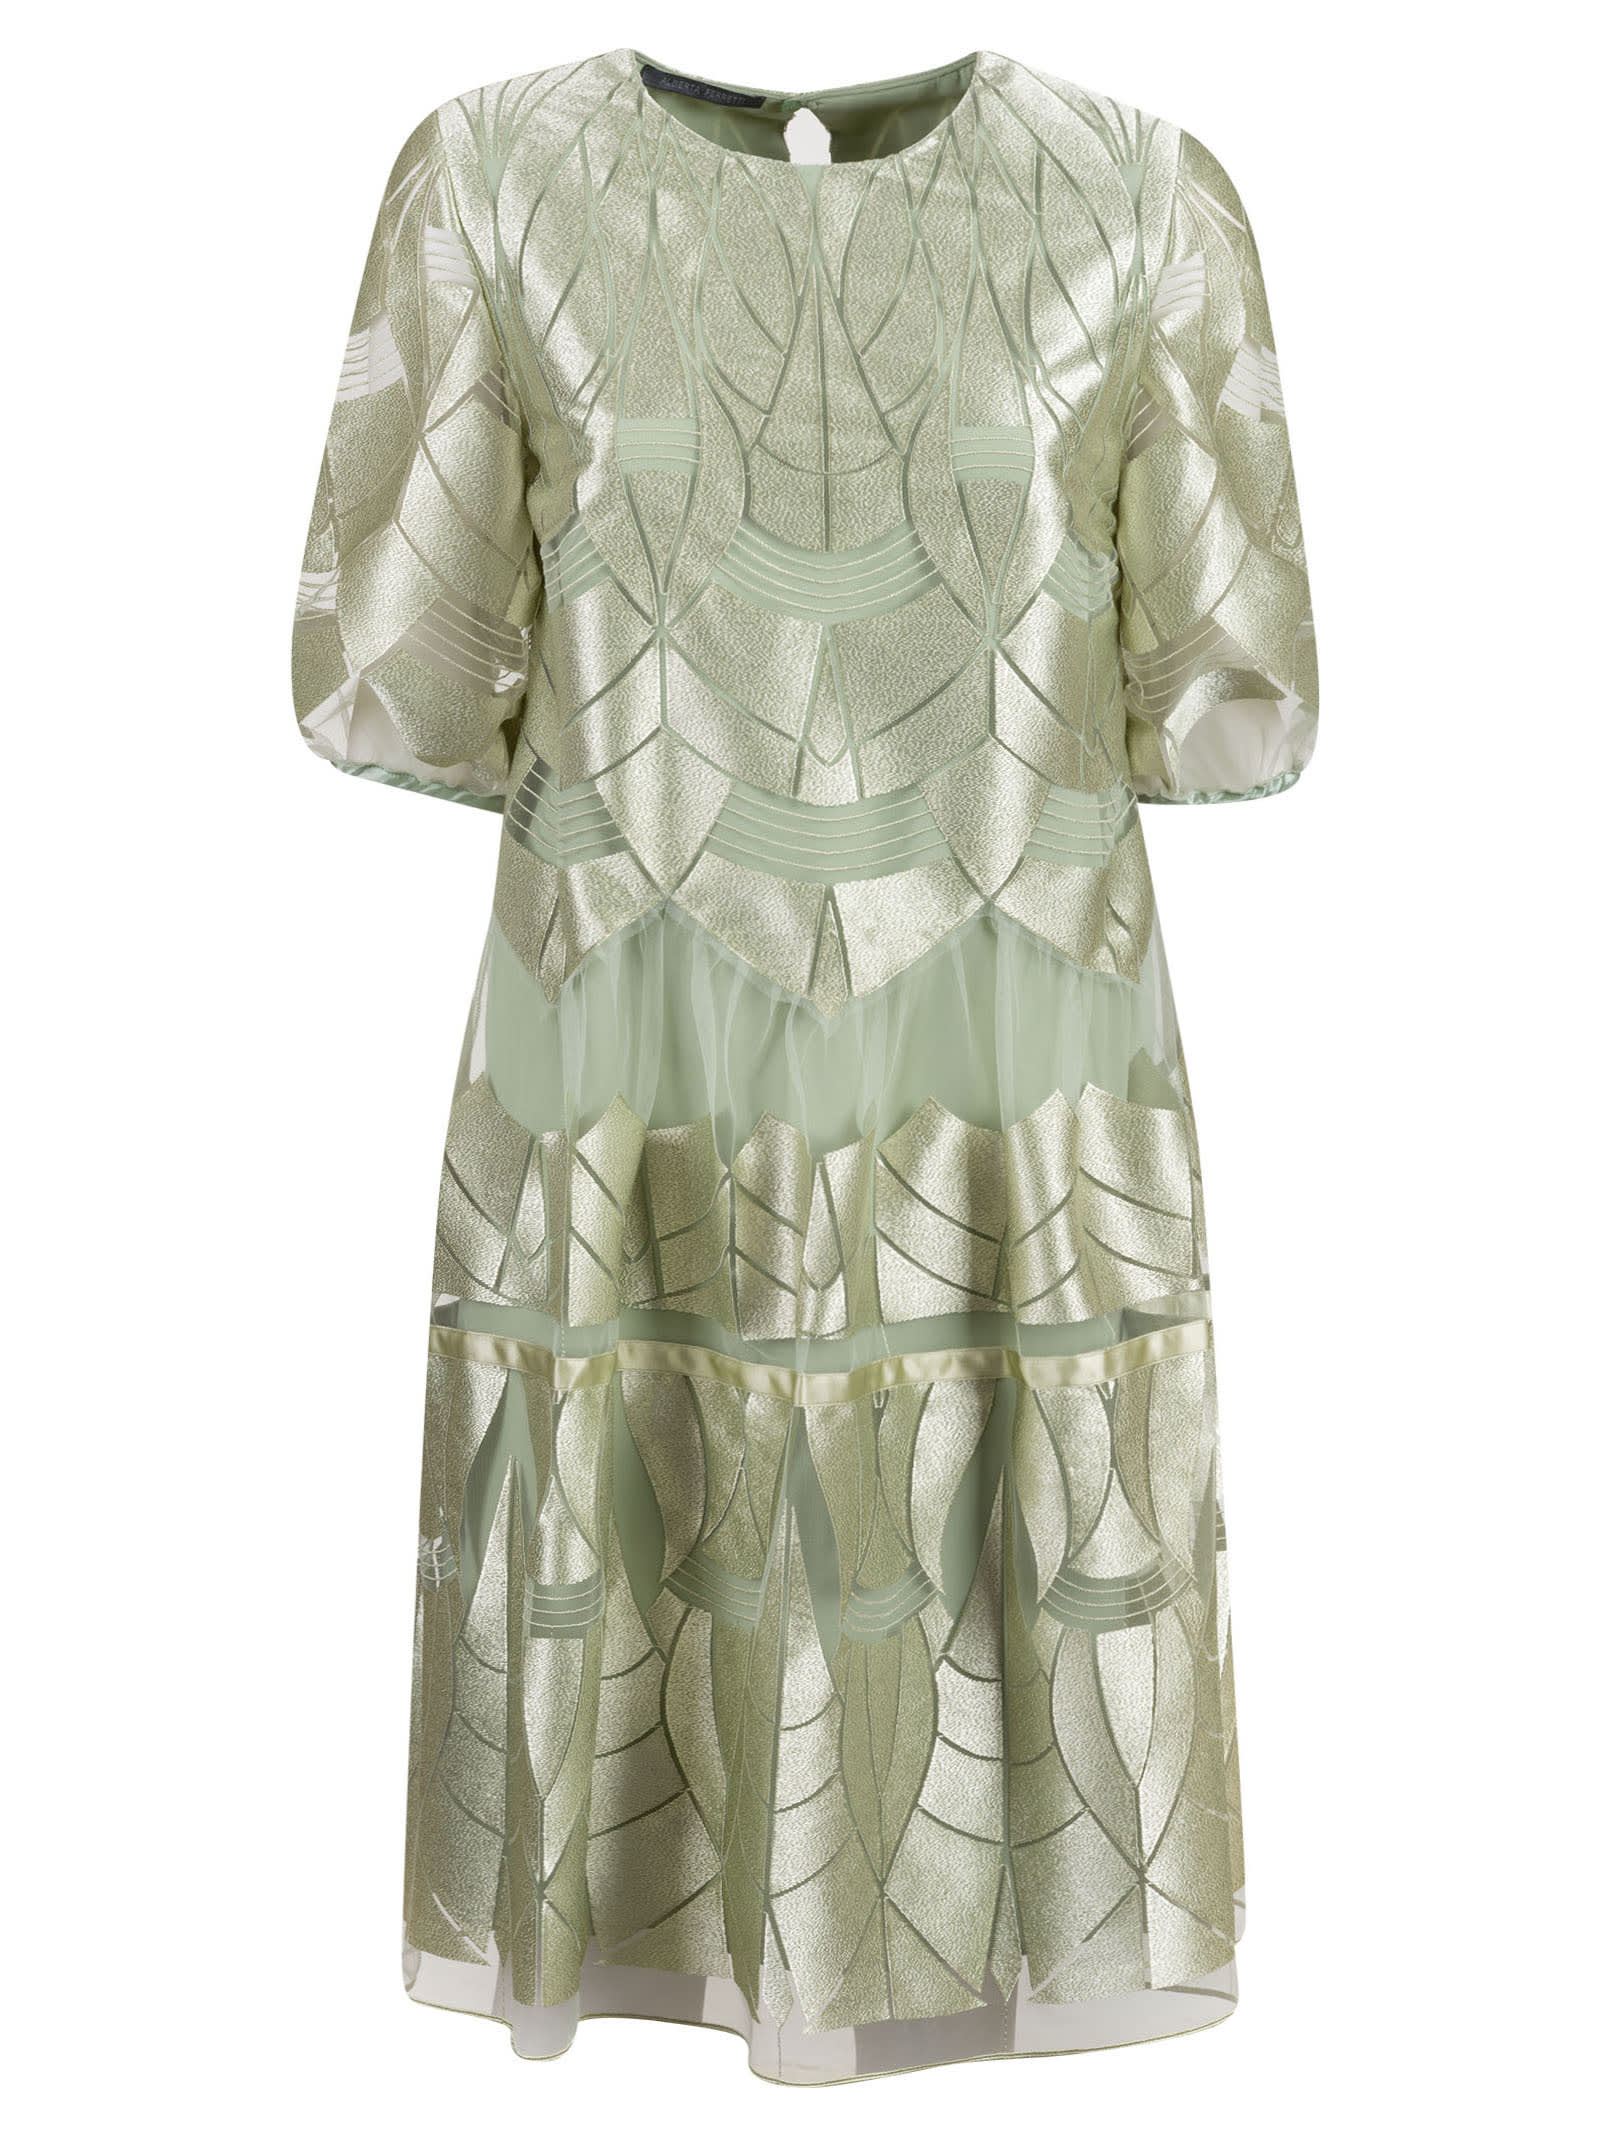 Alberta Ferretti Laser-cut Layered Dress